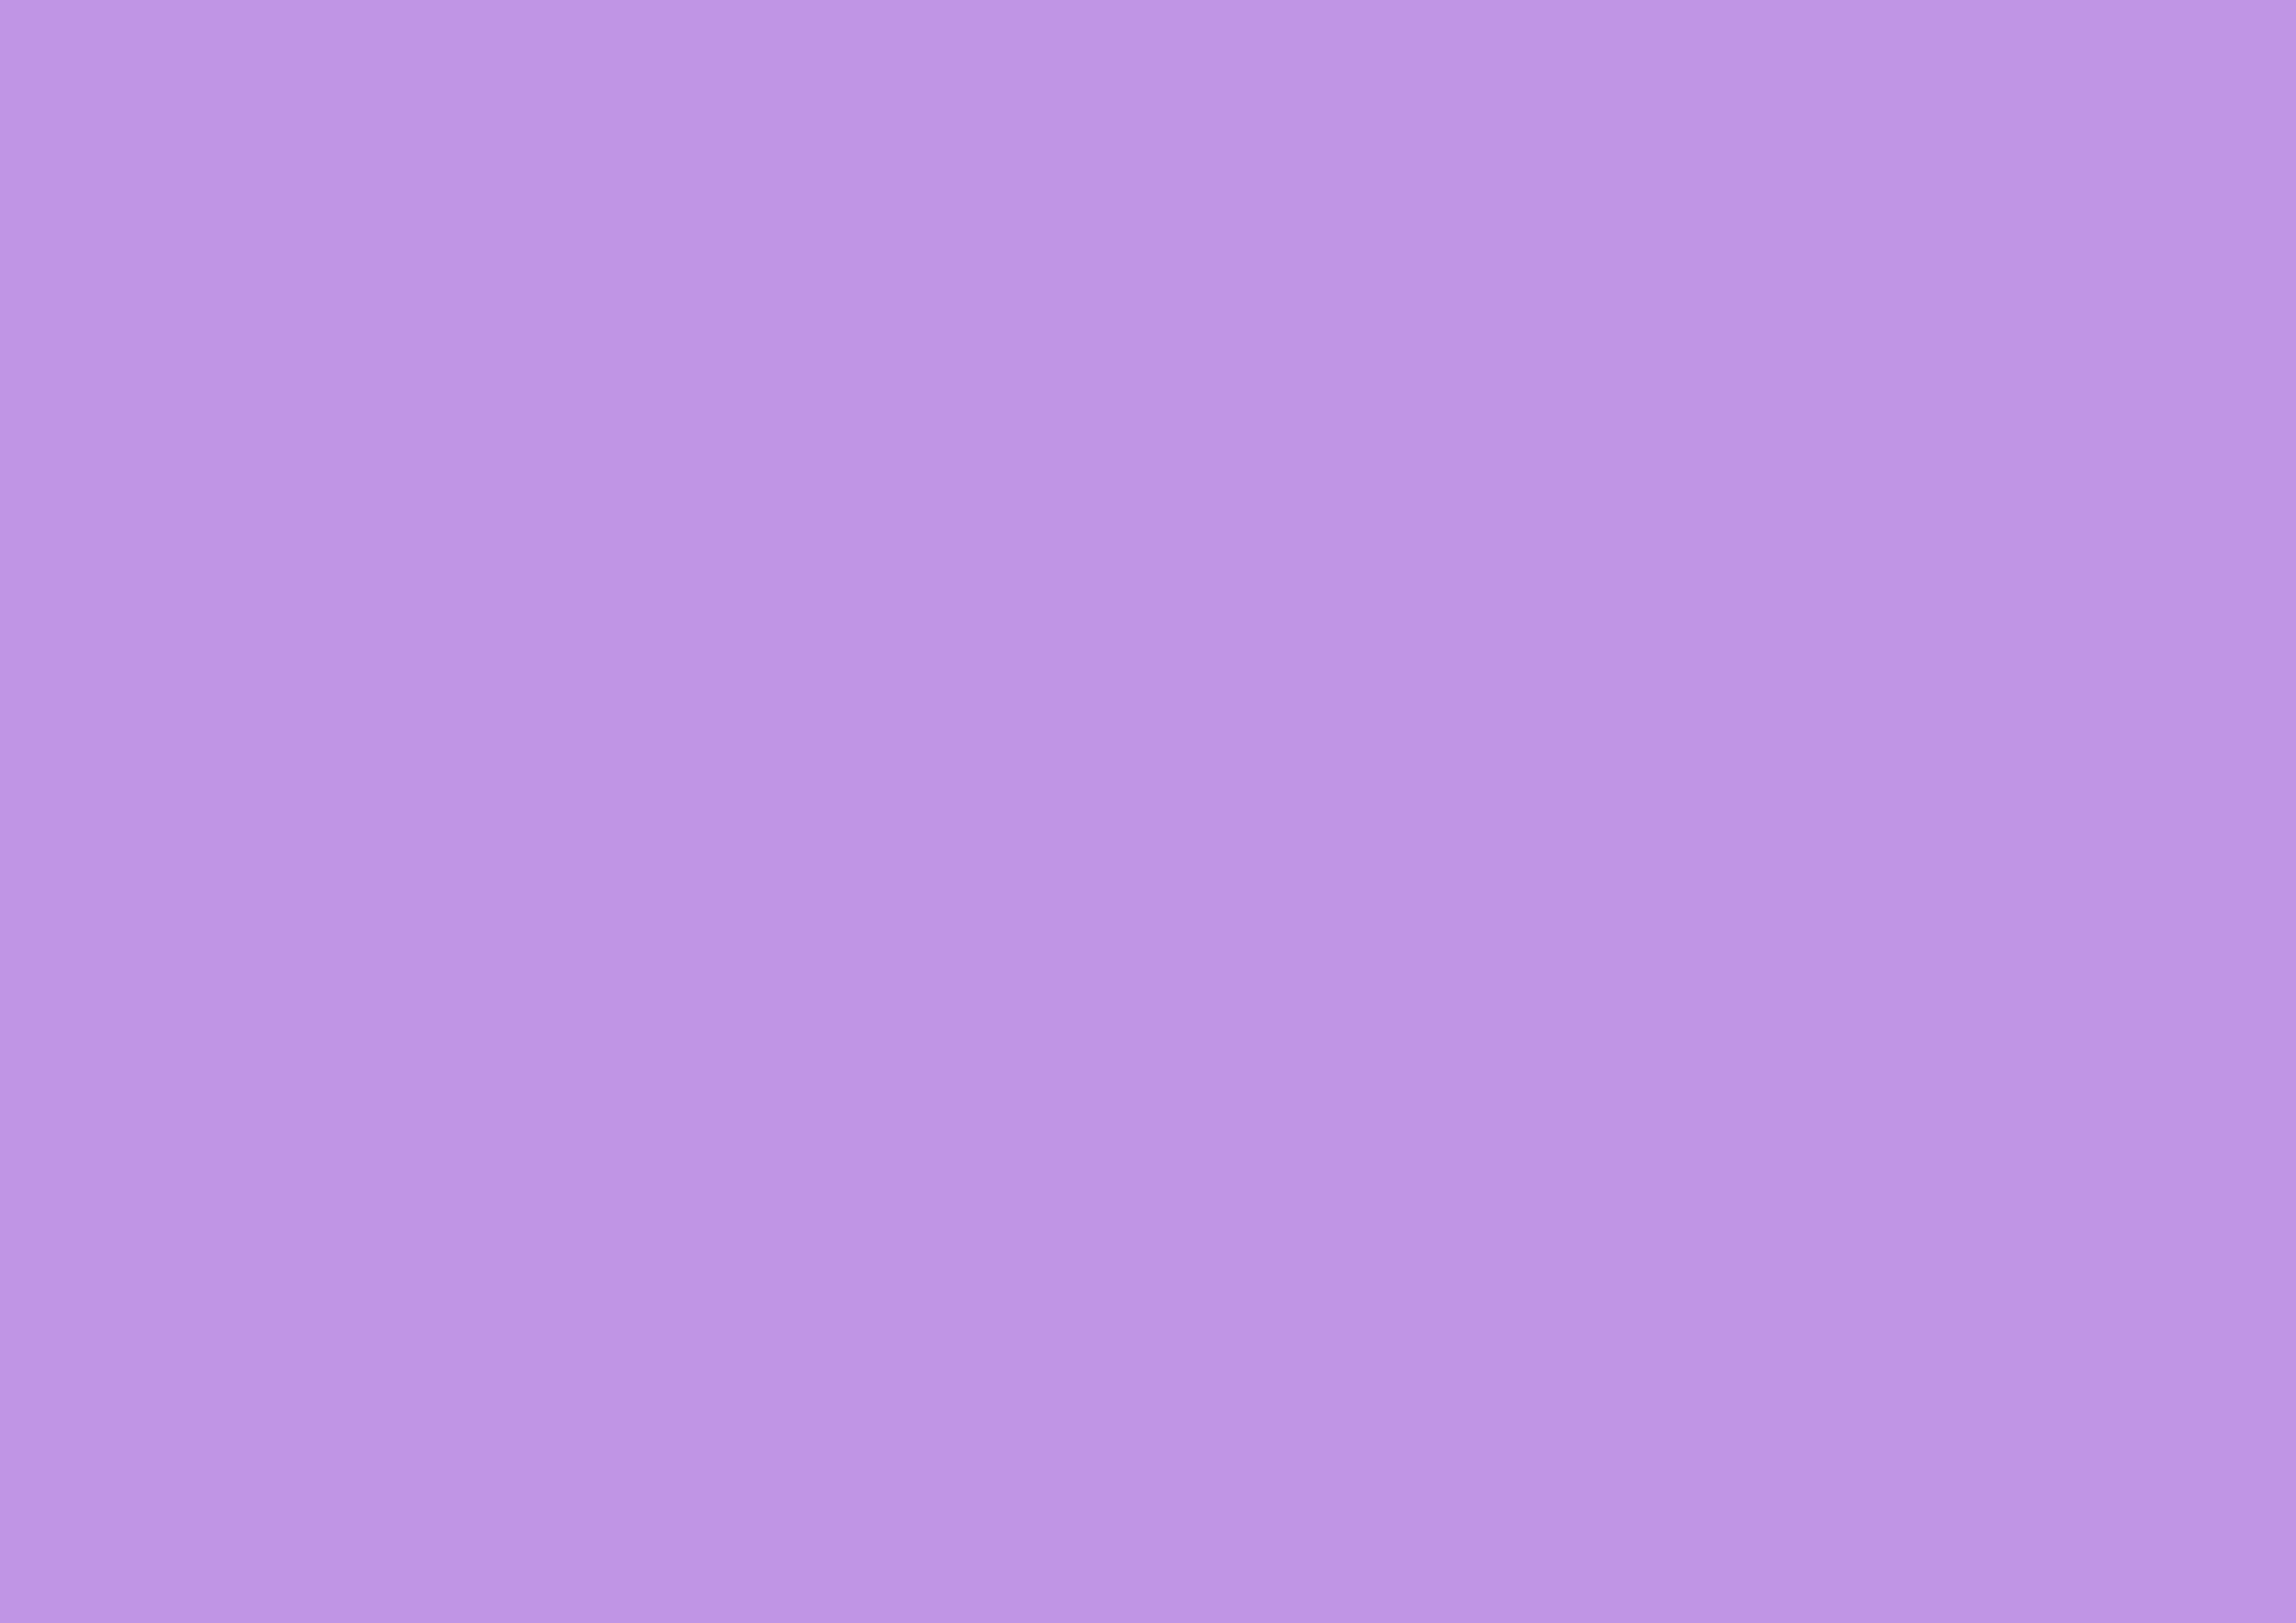 3508x2480 Bright Lavender Solid Color Background